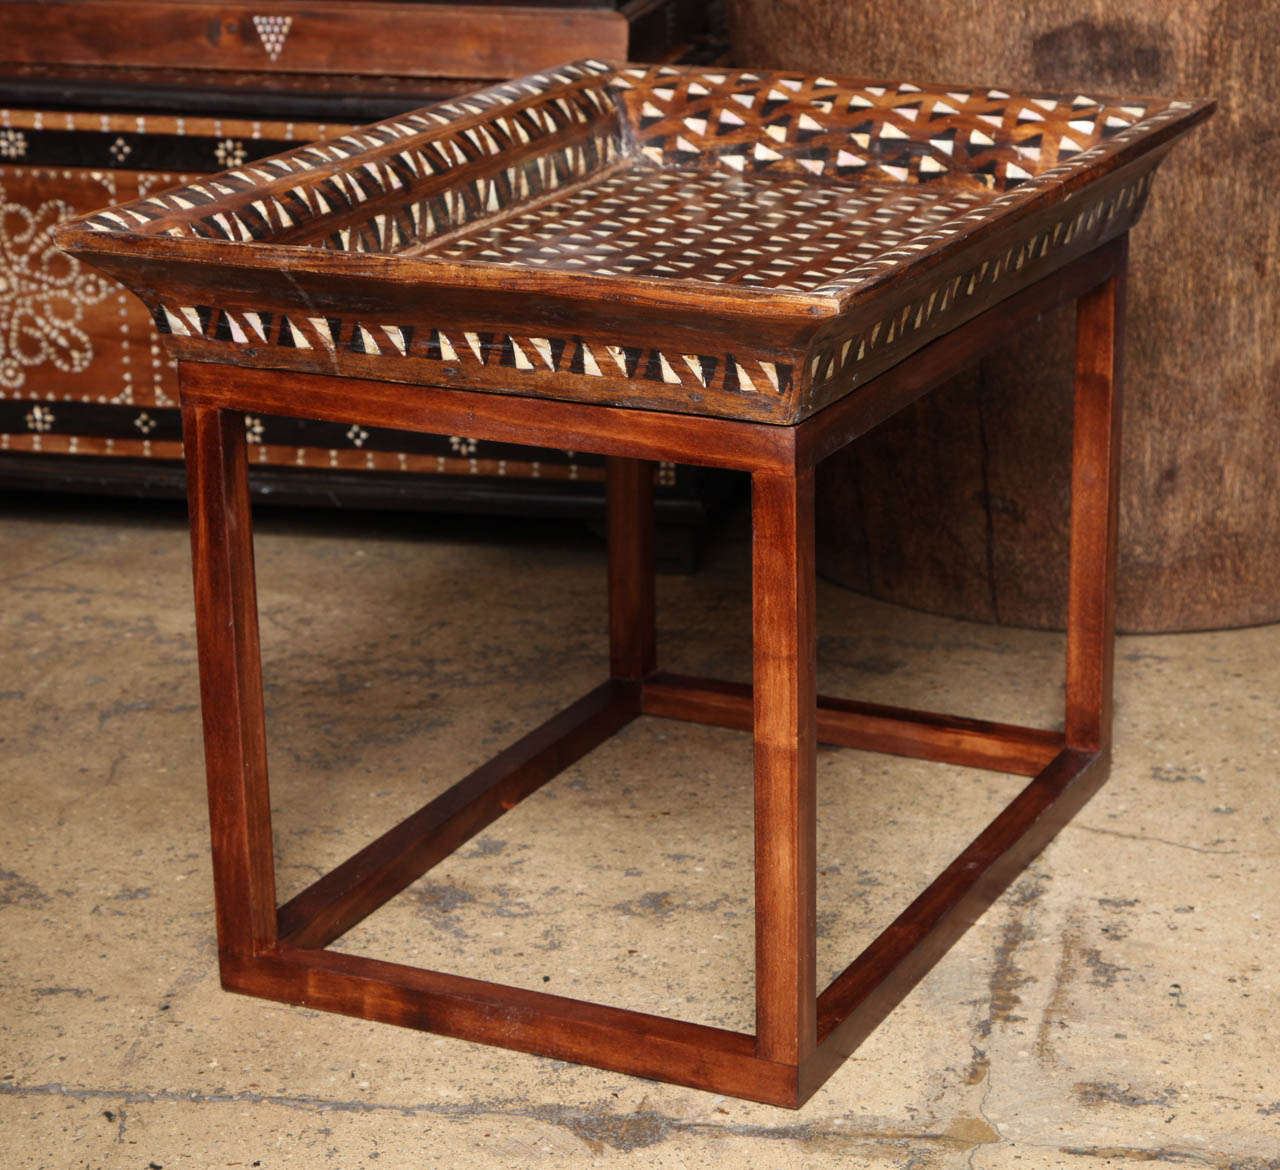 Inlaid Tray Top End Table For Sale At 1stdibs. Childrens Table And Chair Set. Daycare Tables. Myrtle Desk. Kid Desk. Table With Charging Station. Demilune Tables. Adjustable Desk Chairs. Restaurant Tables